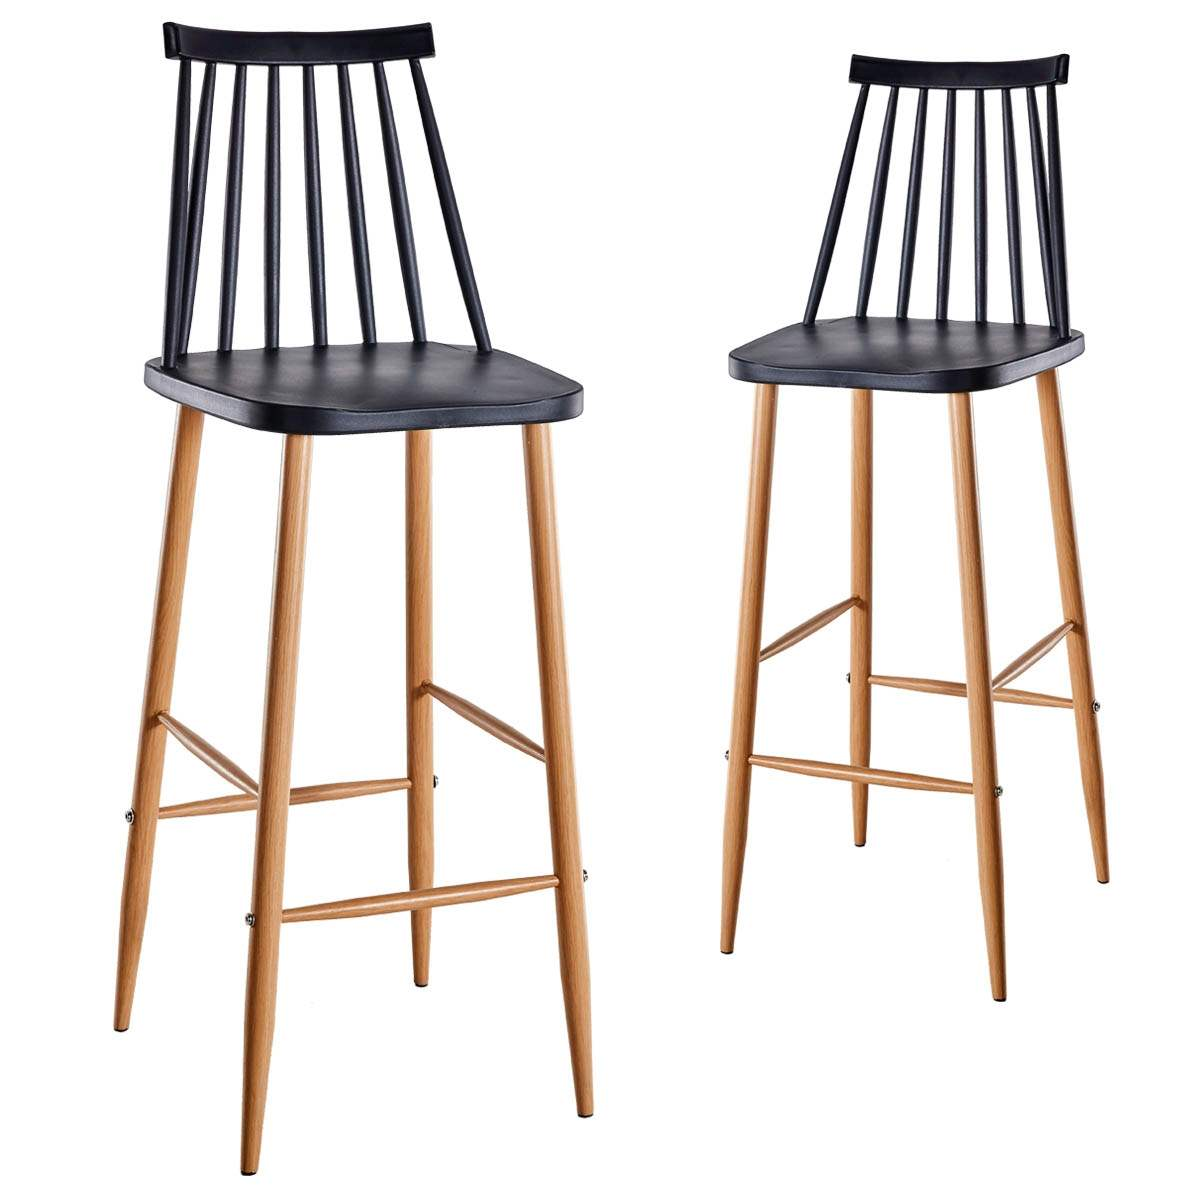 deco in paris 0 lot de 2 chaises de bar scandinaves noires berta berta tab noir. Black Bedroom Furniture Sets. Home Design Ideas